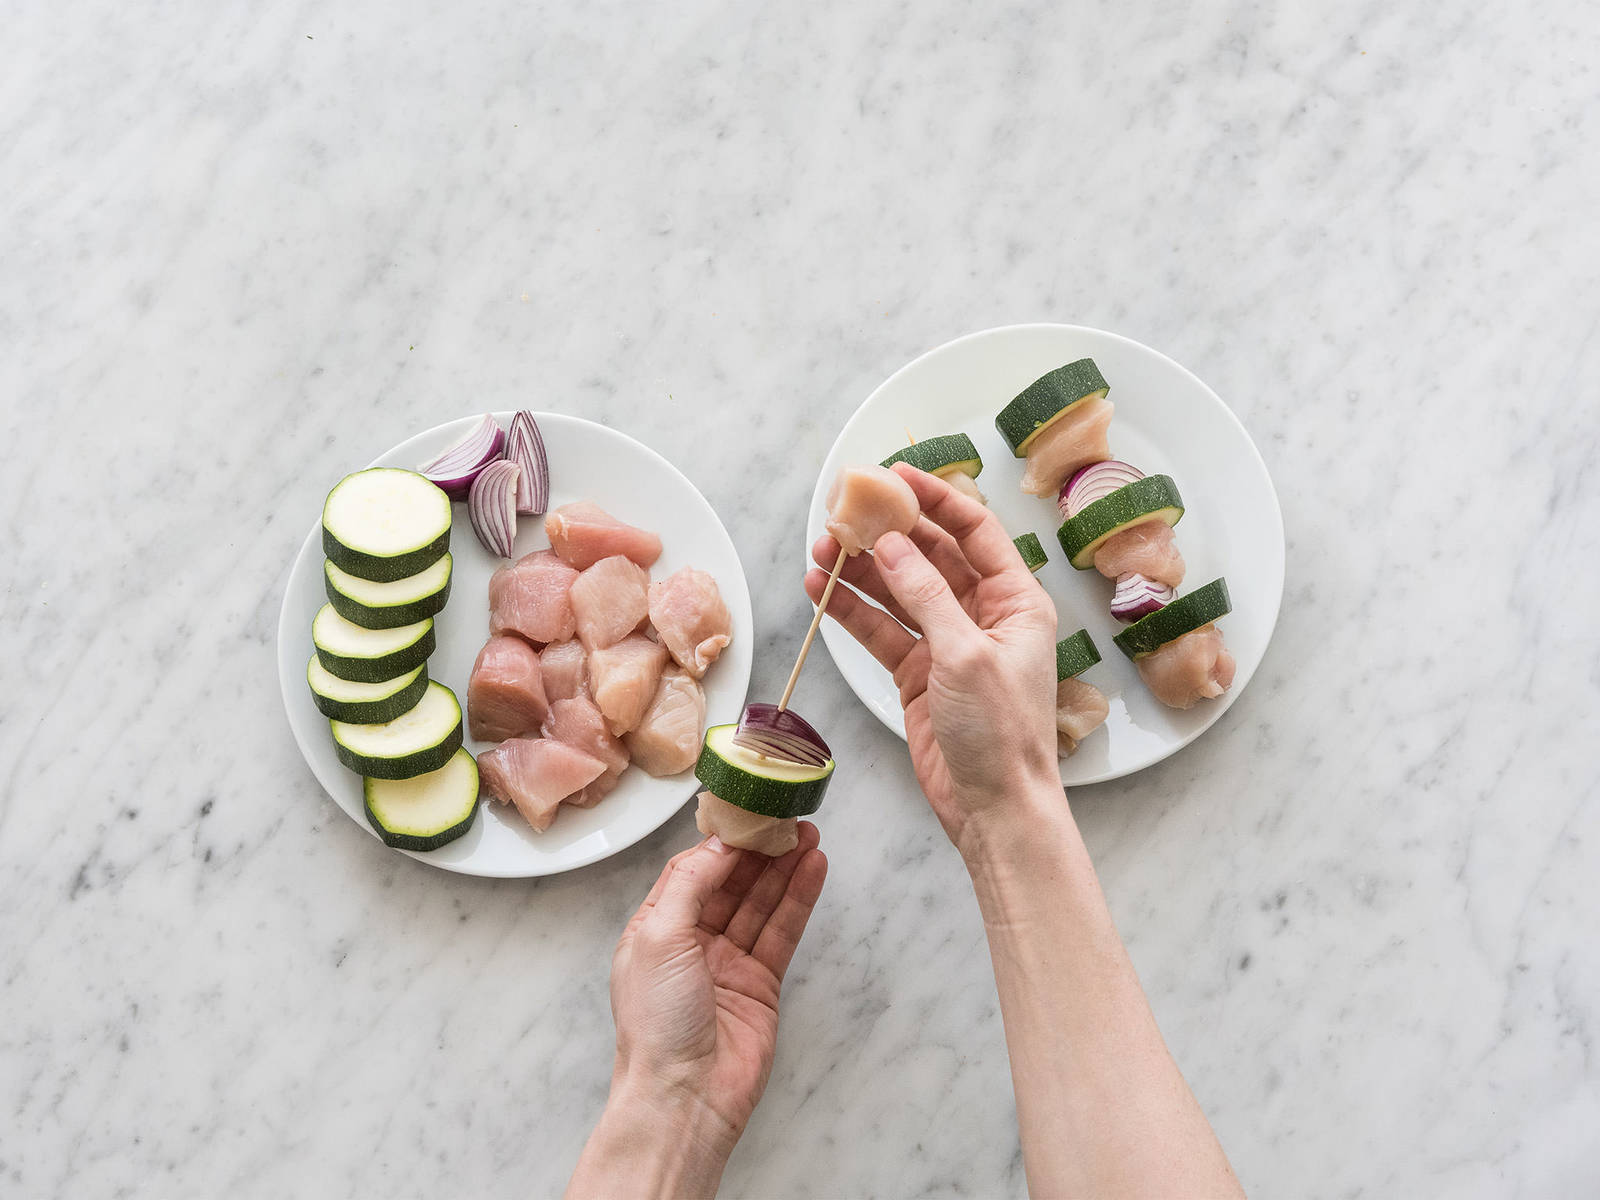 Preheat oven to 200°C/390°F. Thread chicken, zucchini, and red onion onto wooden skewers. In a large frying pan, heat up olive oil over medium heat and sauté skewers for approx. 2 – 3 min. per side. Then, place on a parchment paper-lined baking sheet and place in preheated oven at 200°C/390°F and bake for approx. 10 – 12 min.